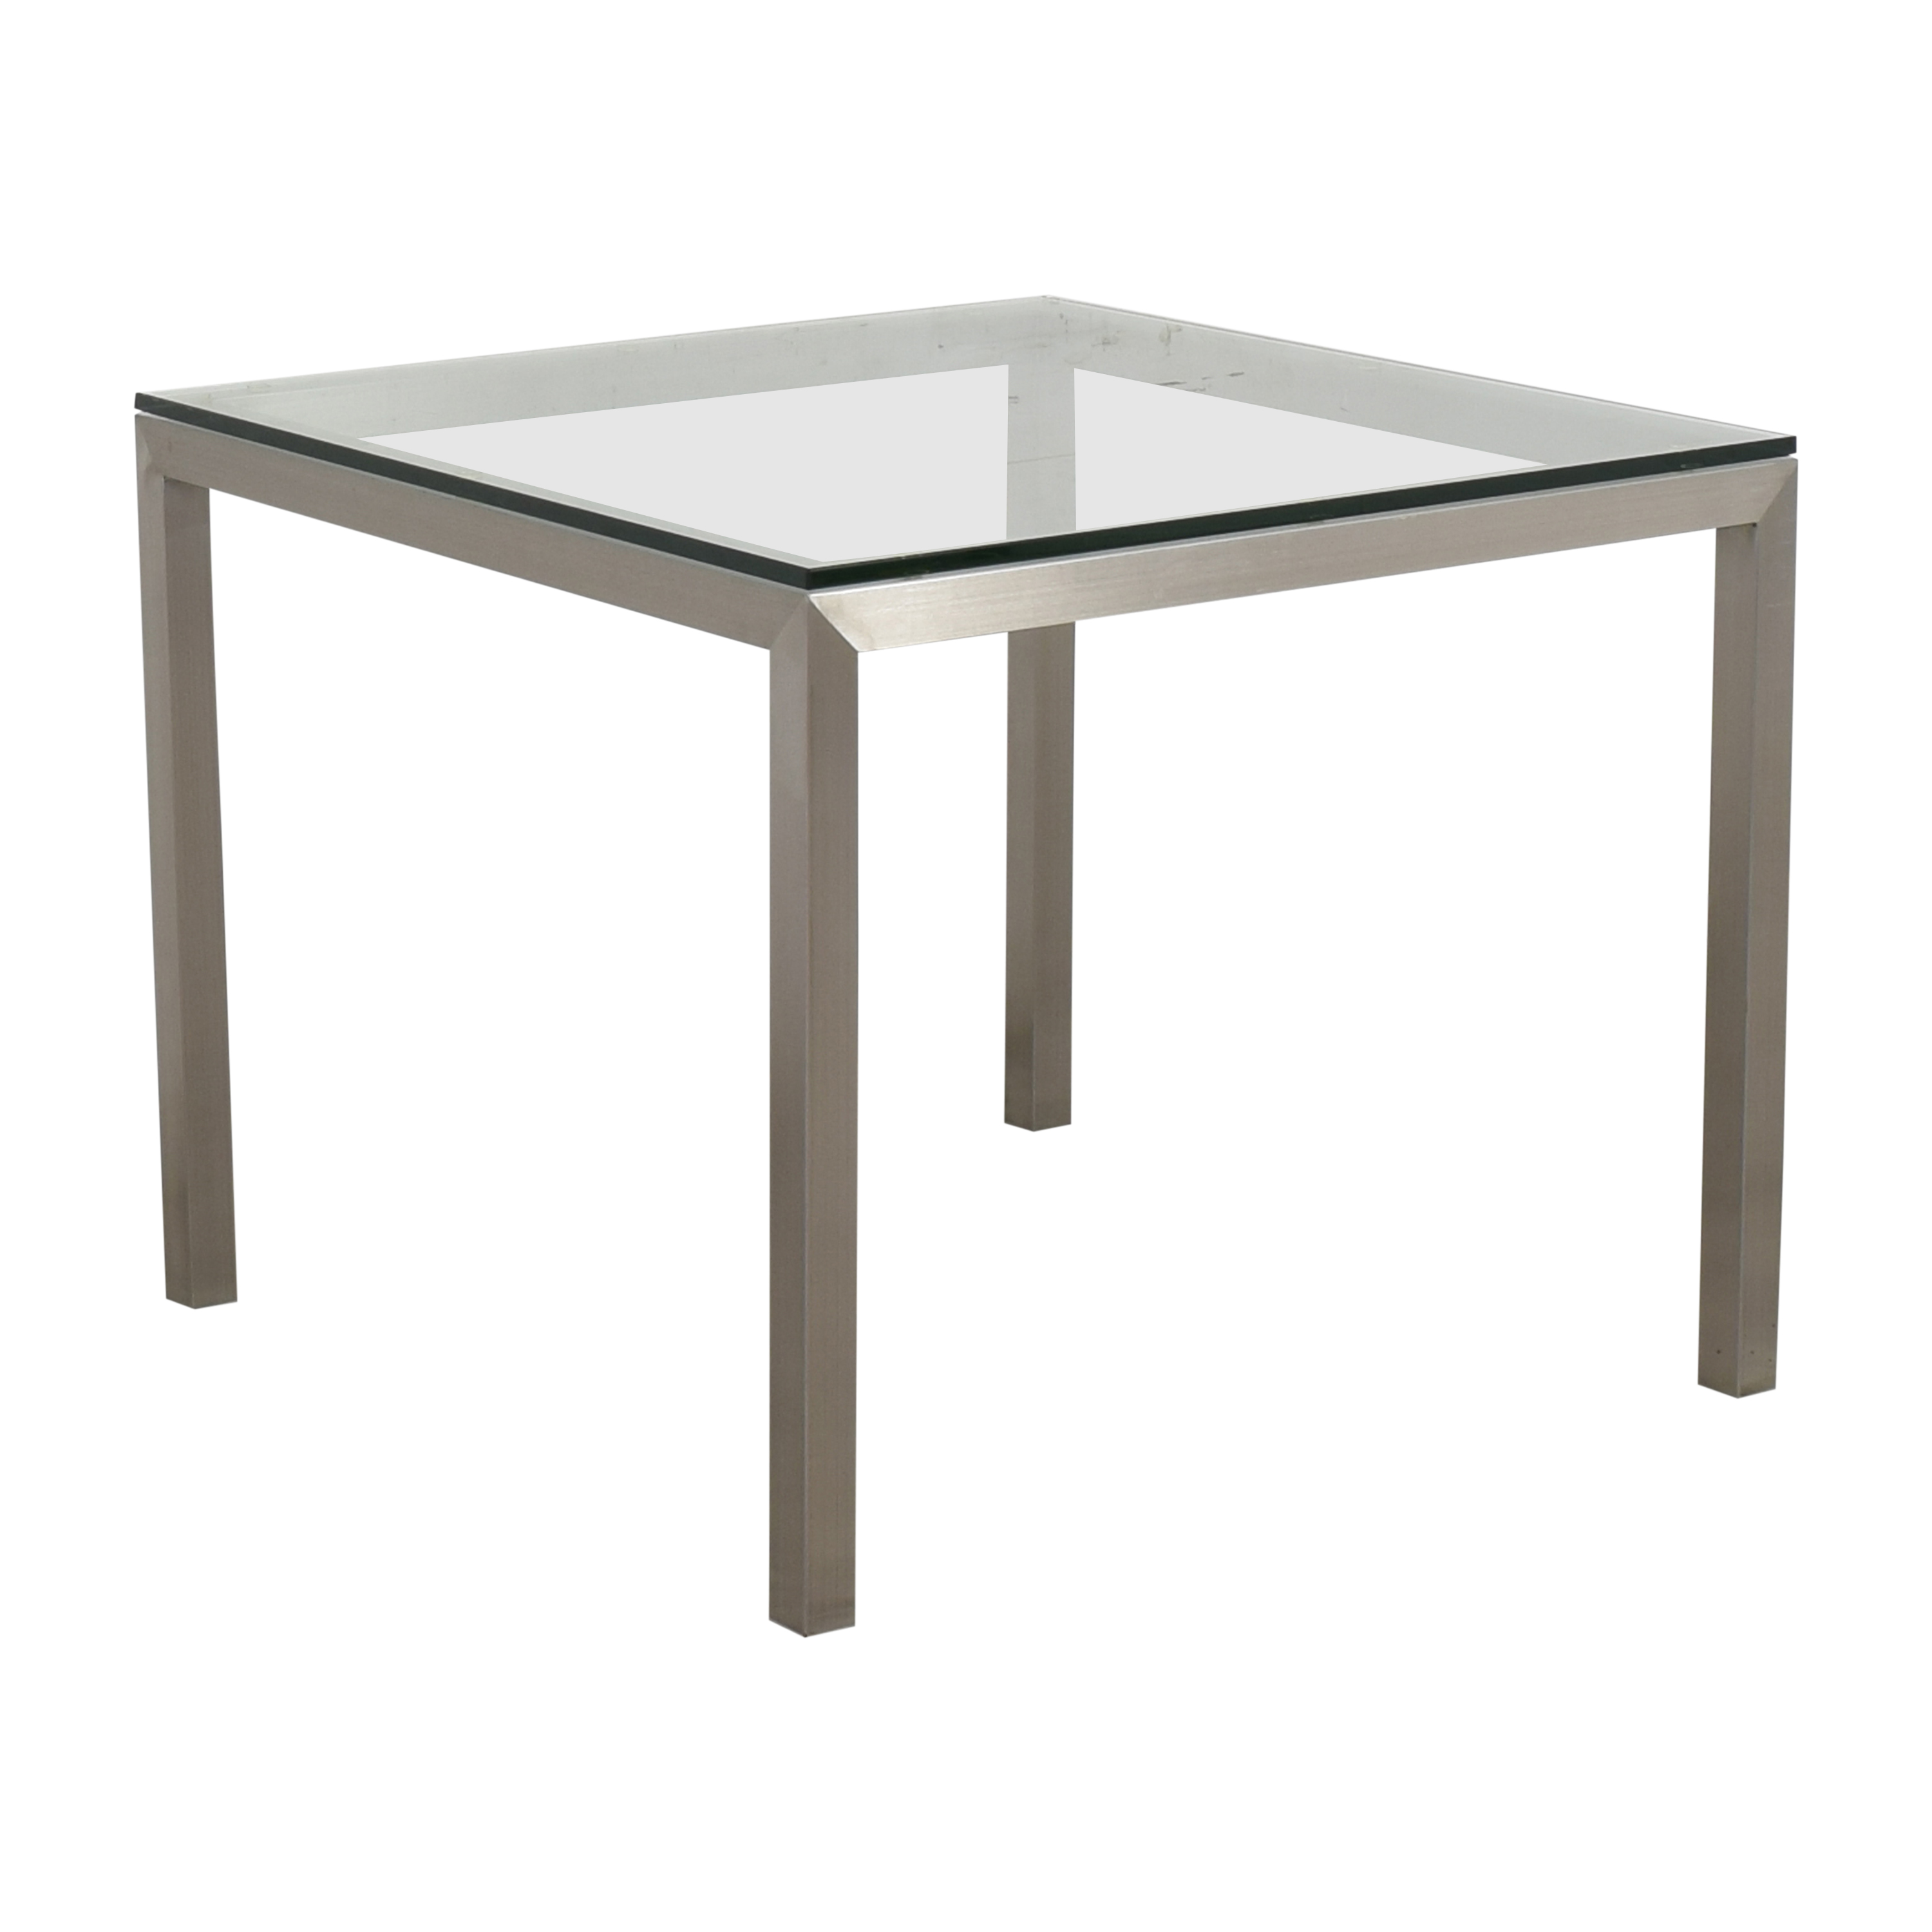 Crate & Barrel Parsons Square Dining Table / Dinner Tables